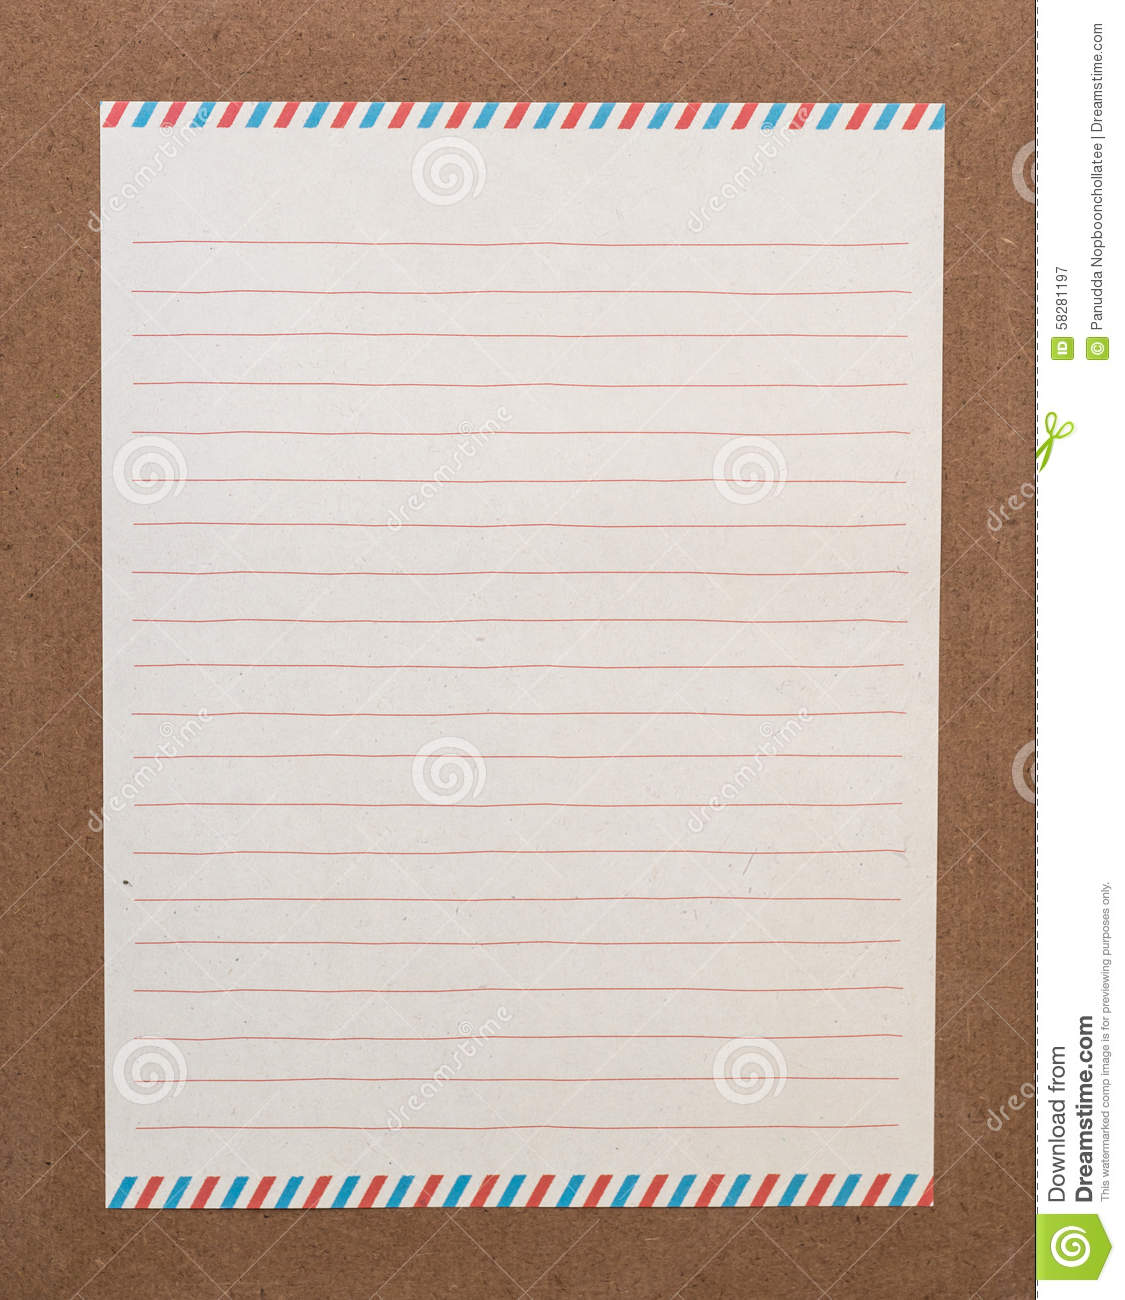 paper for letter writing